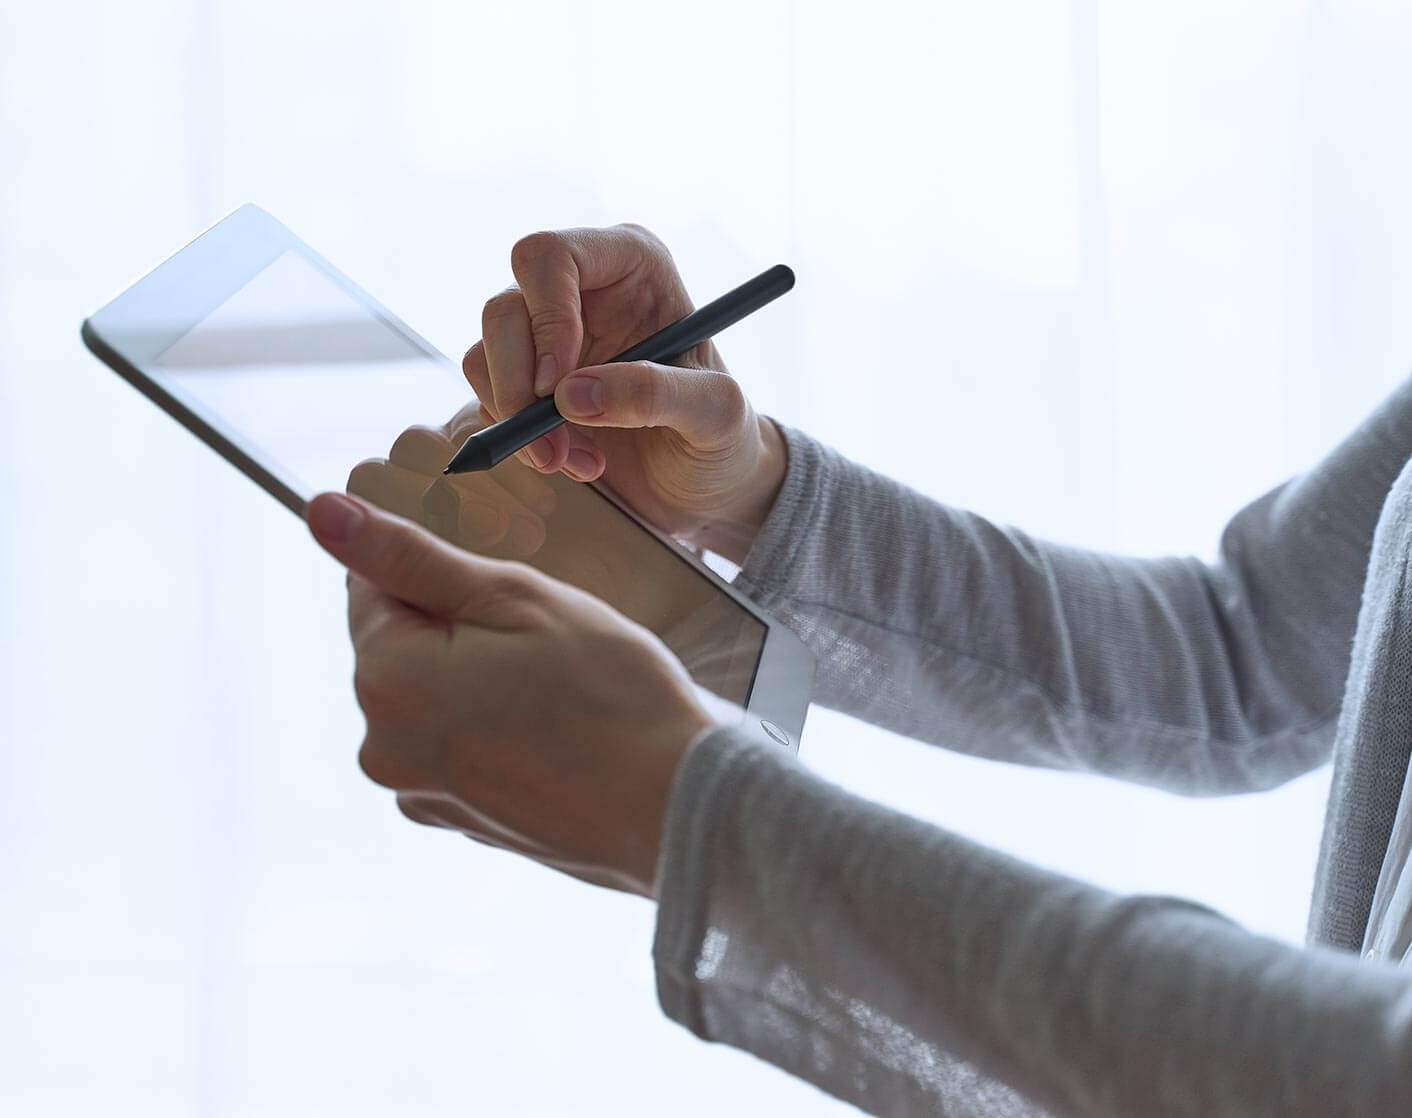 white man holding up tablet using a stylus pen on it